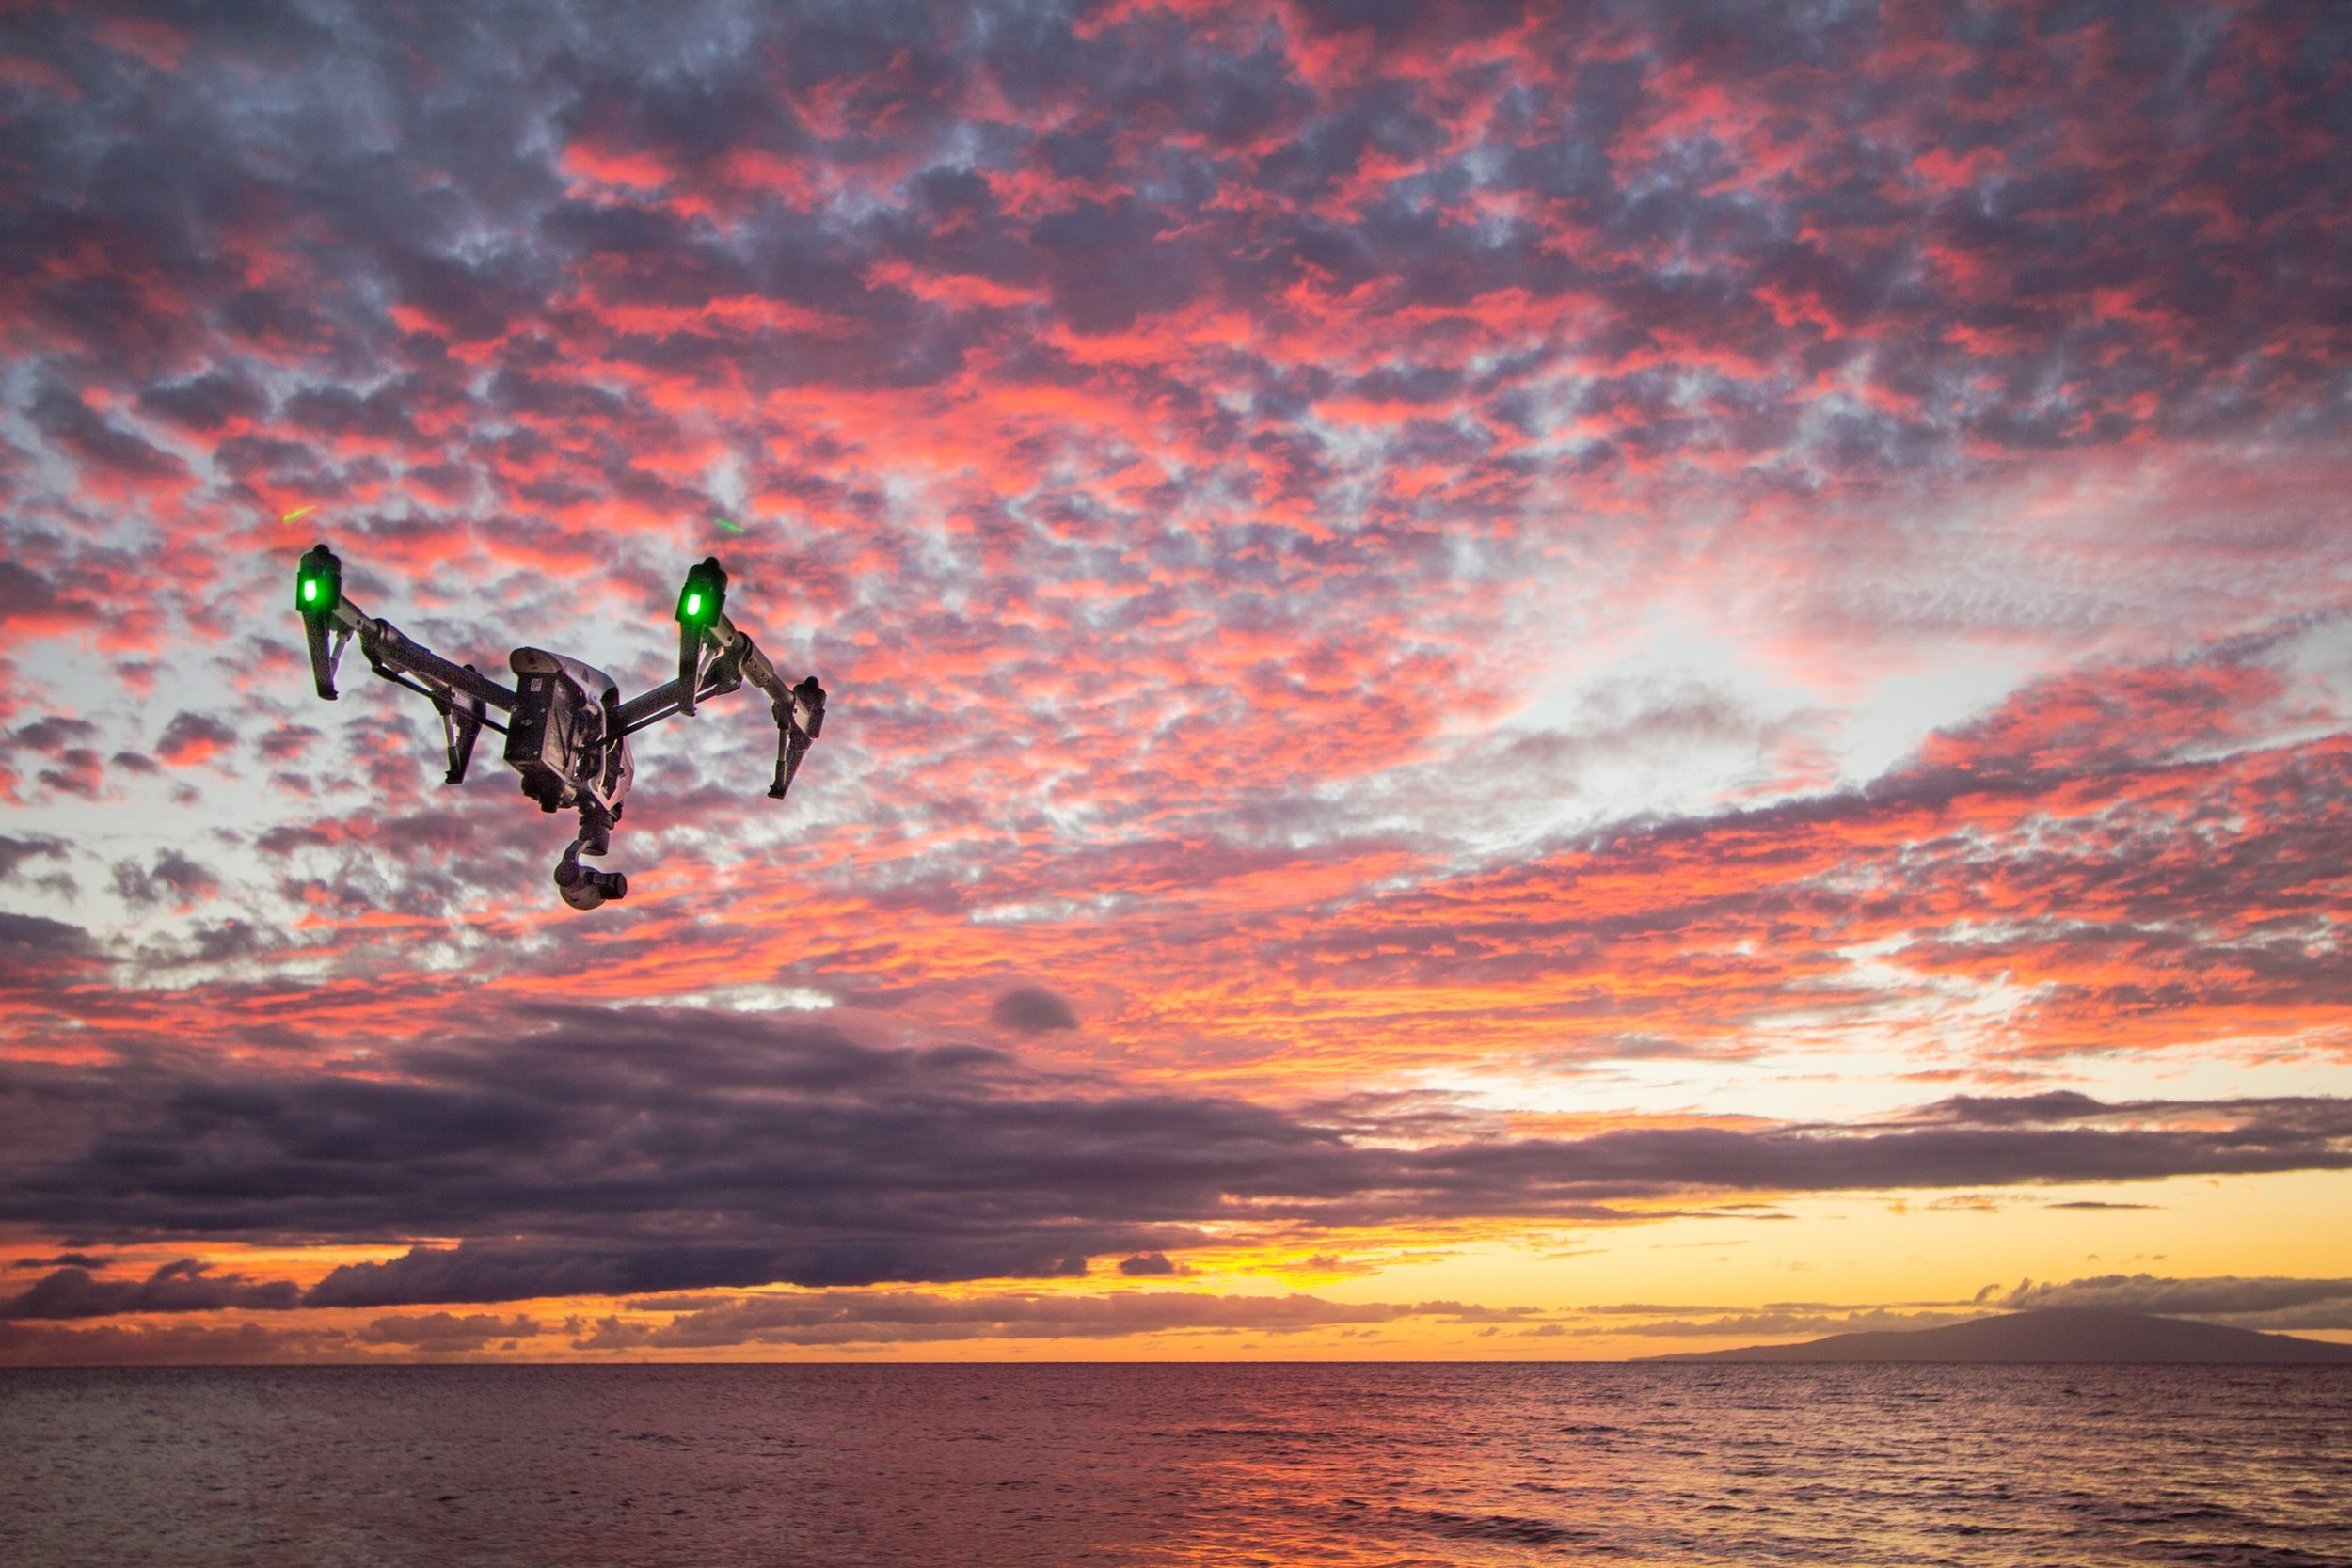 Drones and Remote Vehicles -